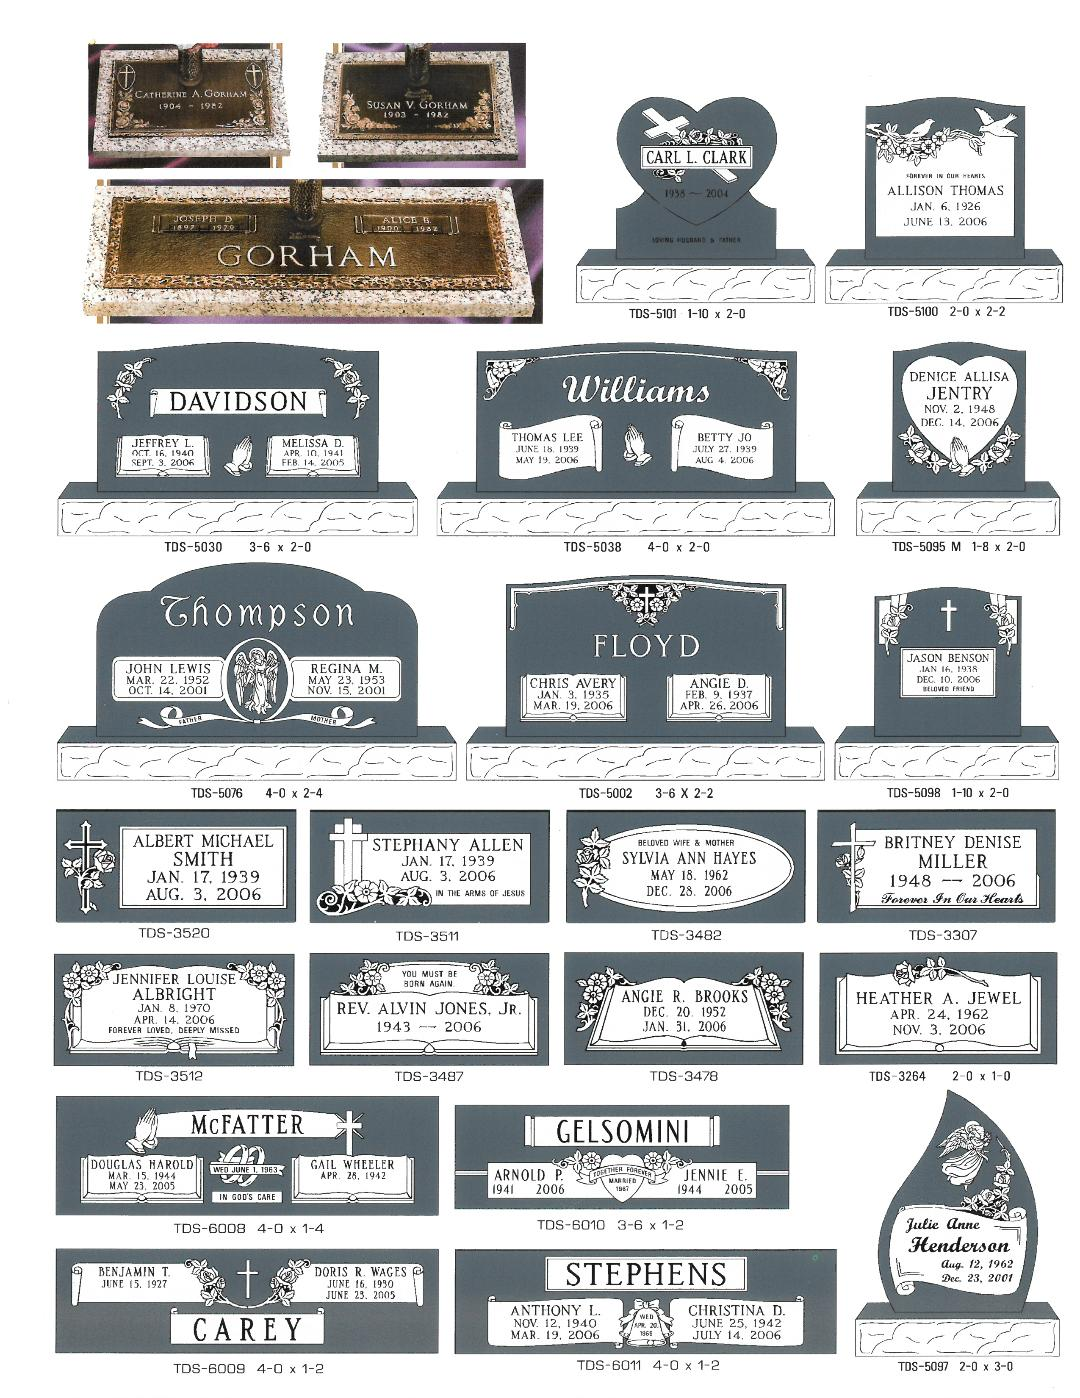 Headstones And Grave Markers Sullivan Bros Mortuary Inc Of Greer